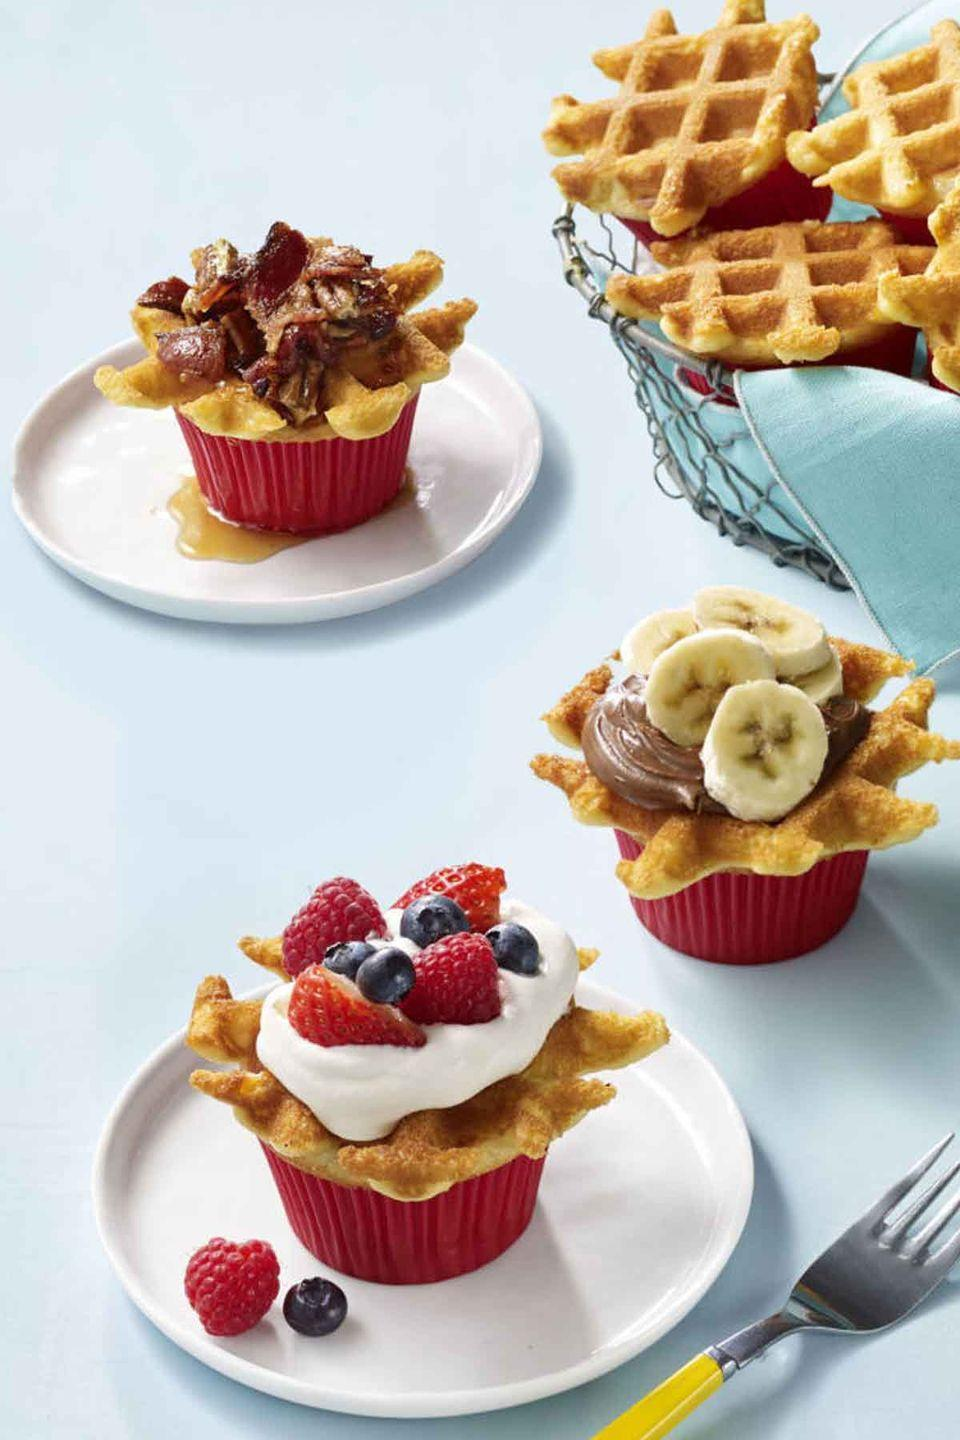 """<p>Customize these delightful breakfast cupcakes with your mom's favorite toppings and fruit.</p><p><strong><em><a href=""""https://www.womansday.com/food-recipes/food-drinks/recipes/a57925/wafflecakes-recipe/"""" rel=""""nofollow noopener"""" target=""""_blank"""" data-ylk=""""slk:Get the Wafflecakes recipe."""" class=""""link rapid-noclick-resp"""">Get the Wafflecakes recipe.</a> </em></strong><br></p>"""